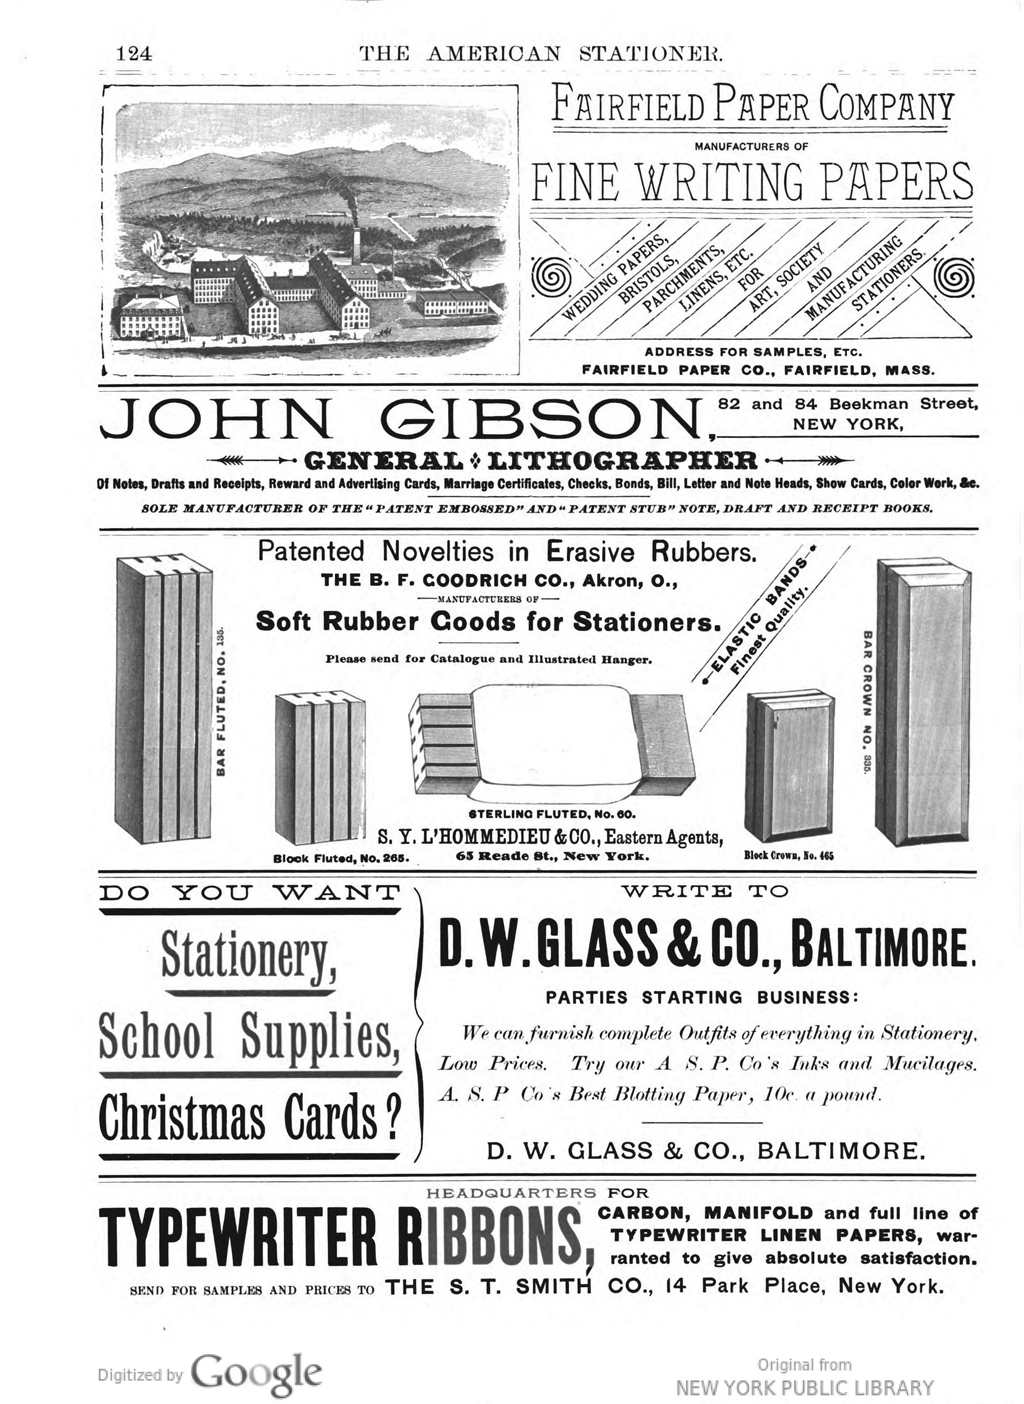 Advertisement for the Fairfield Paper Company in The American Stationer (1887).